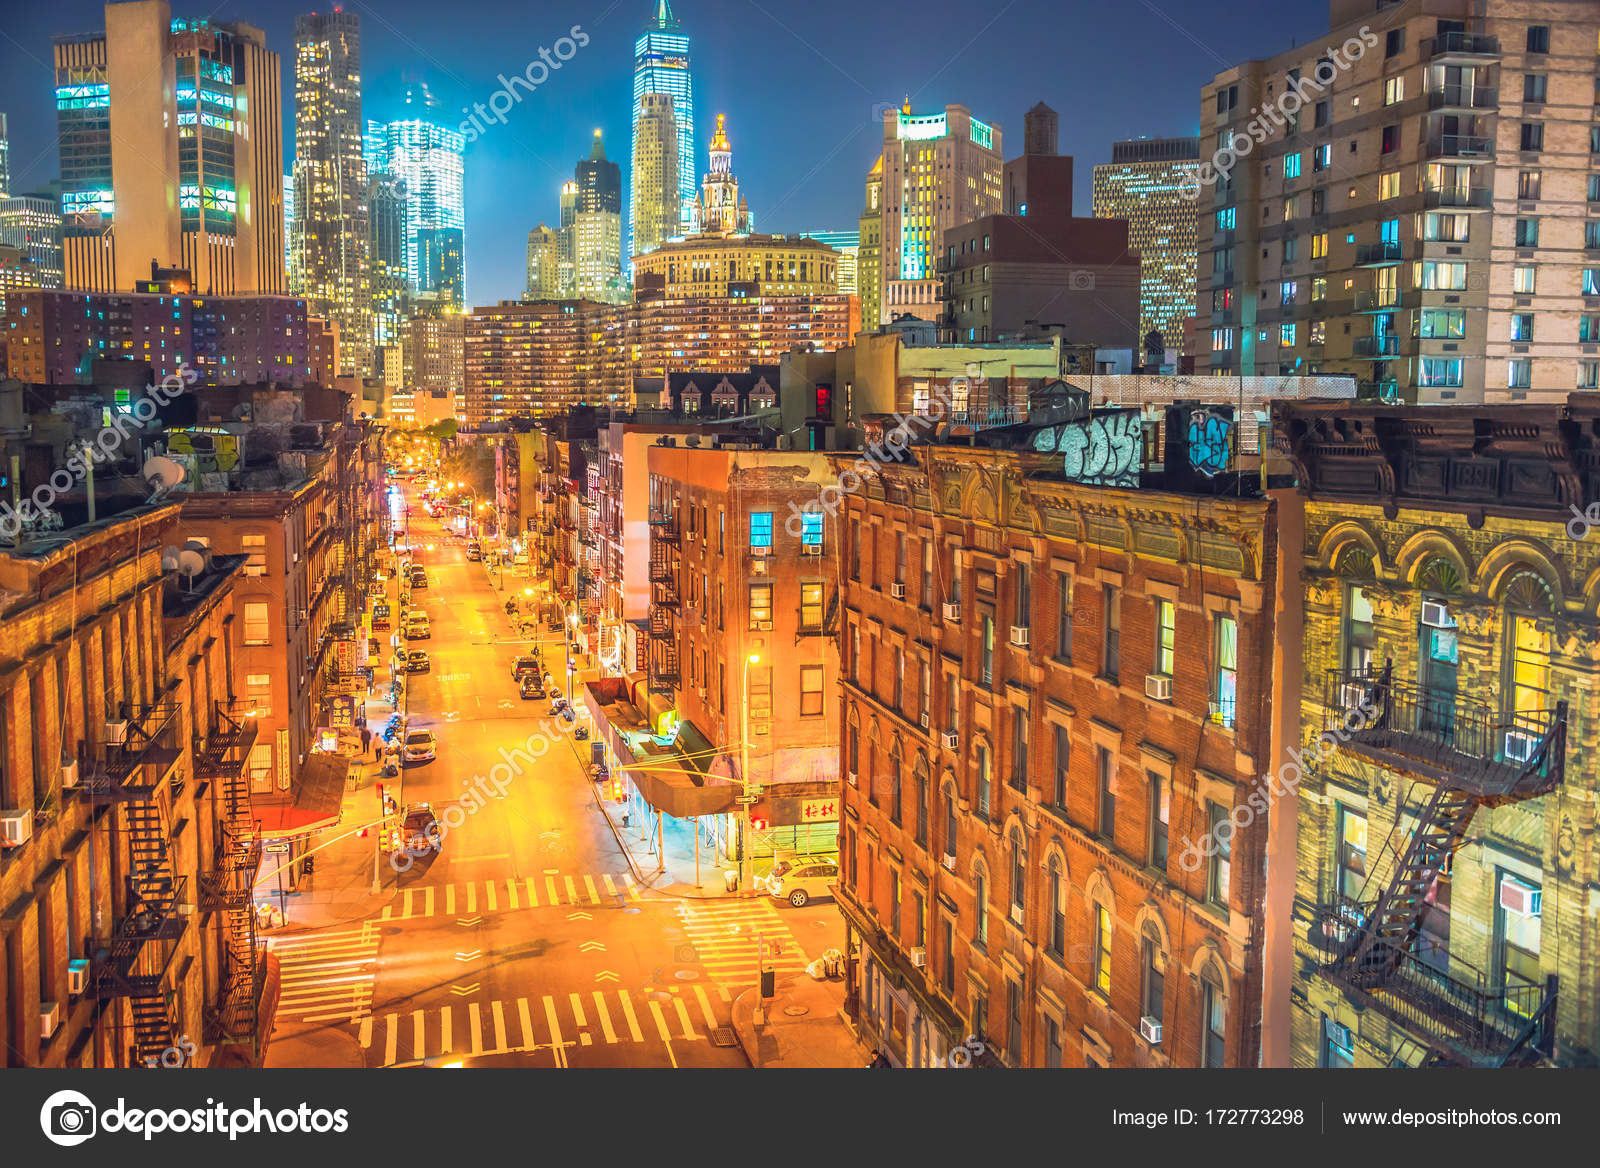 New York City At Night Chinatown Stock Photo C Chumakov16 172773298